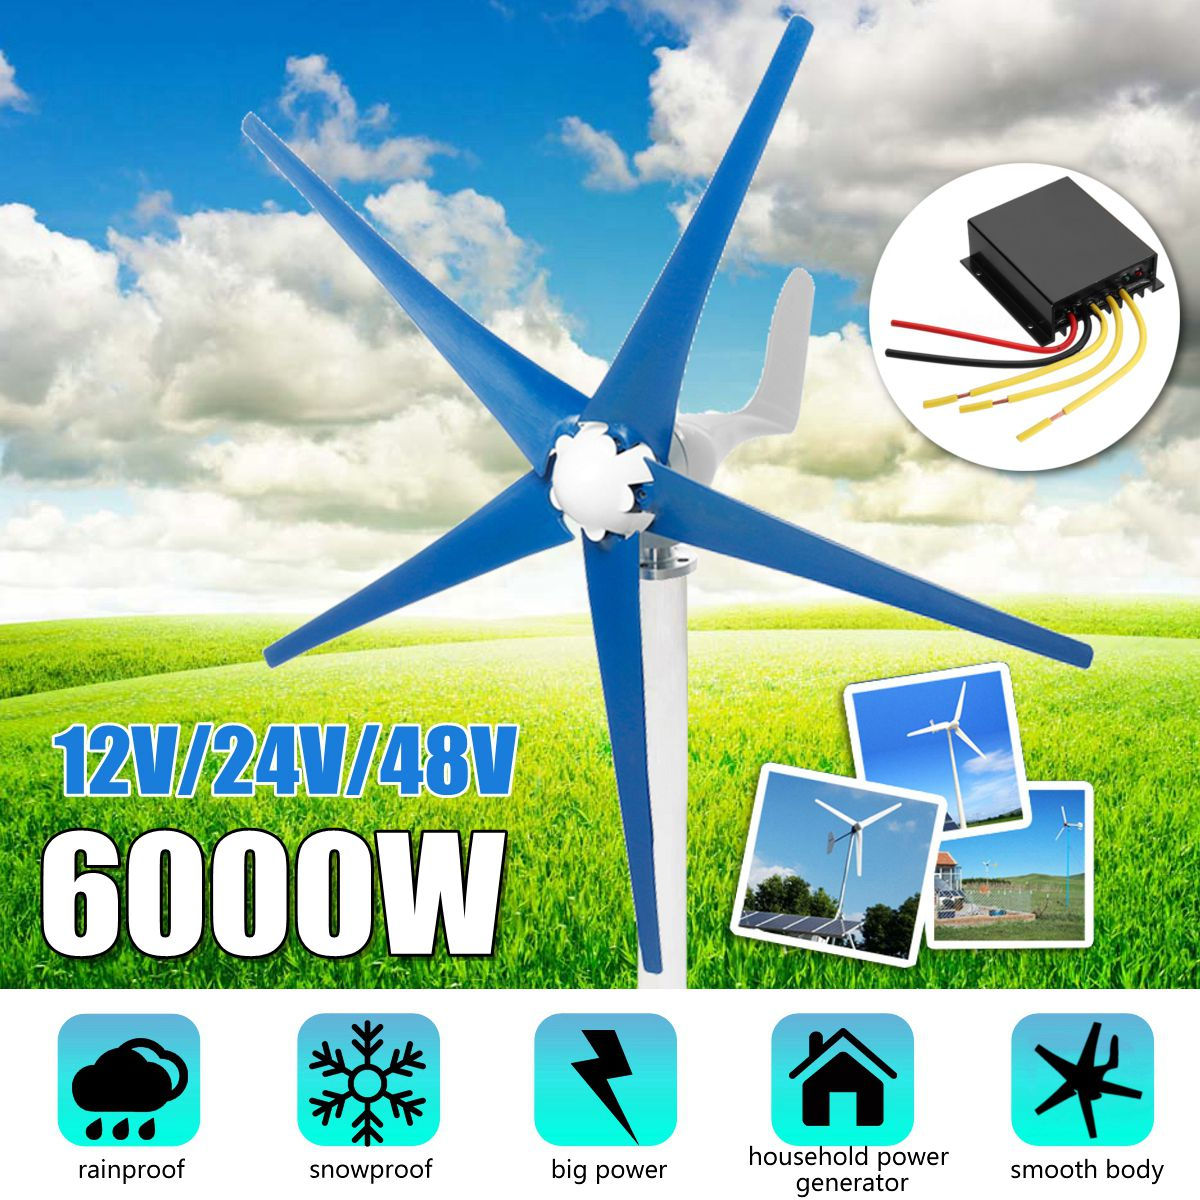 6000W 12/24/48V Horizontal-Axis 5-Blades Wind Turbines Generator 3-Phase AC Permanent-Magnet Synchronous power Supply Generator